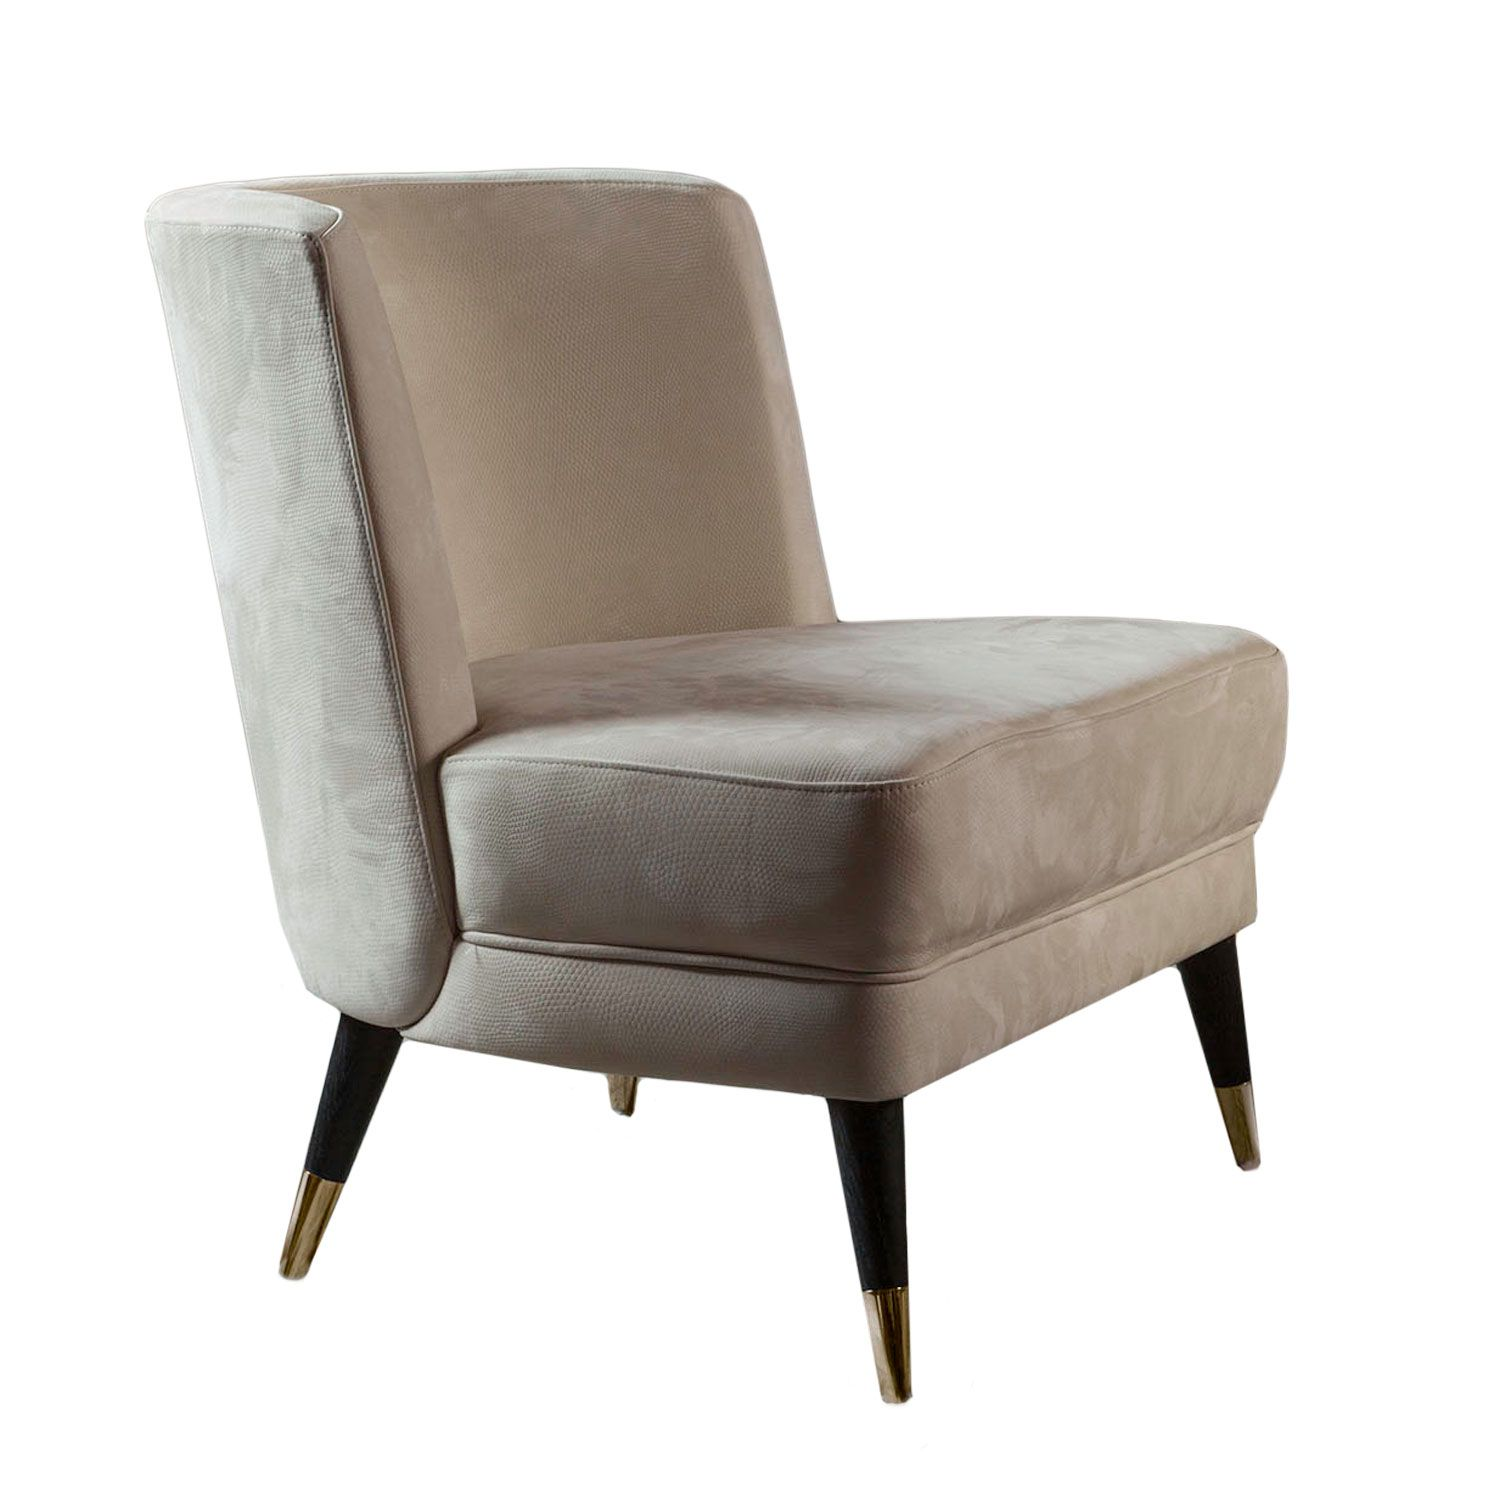 Perfect Finish Upholstery Capital Collection Furniture Seats